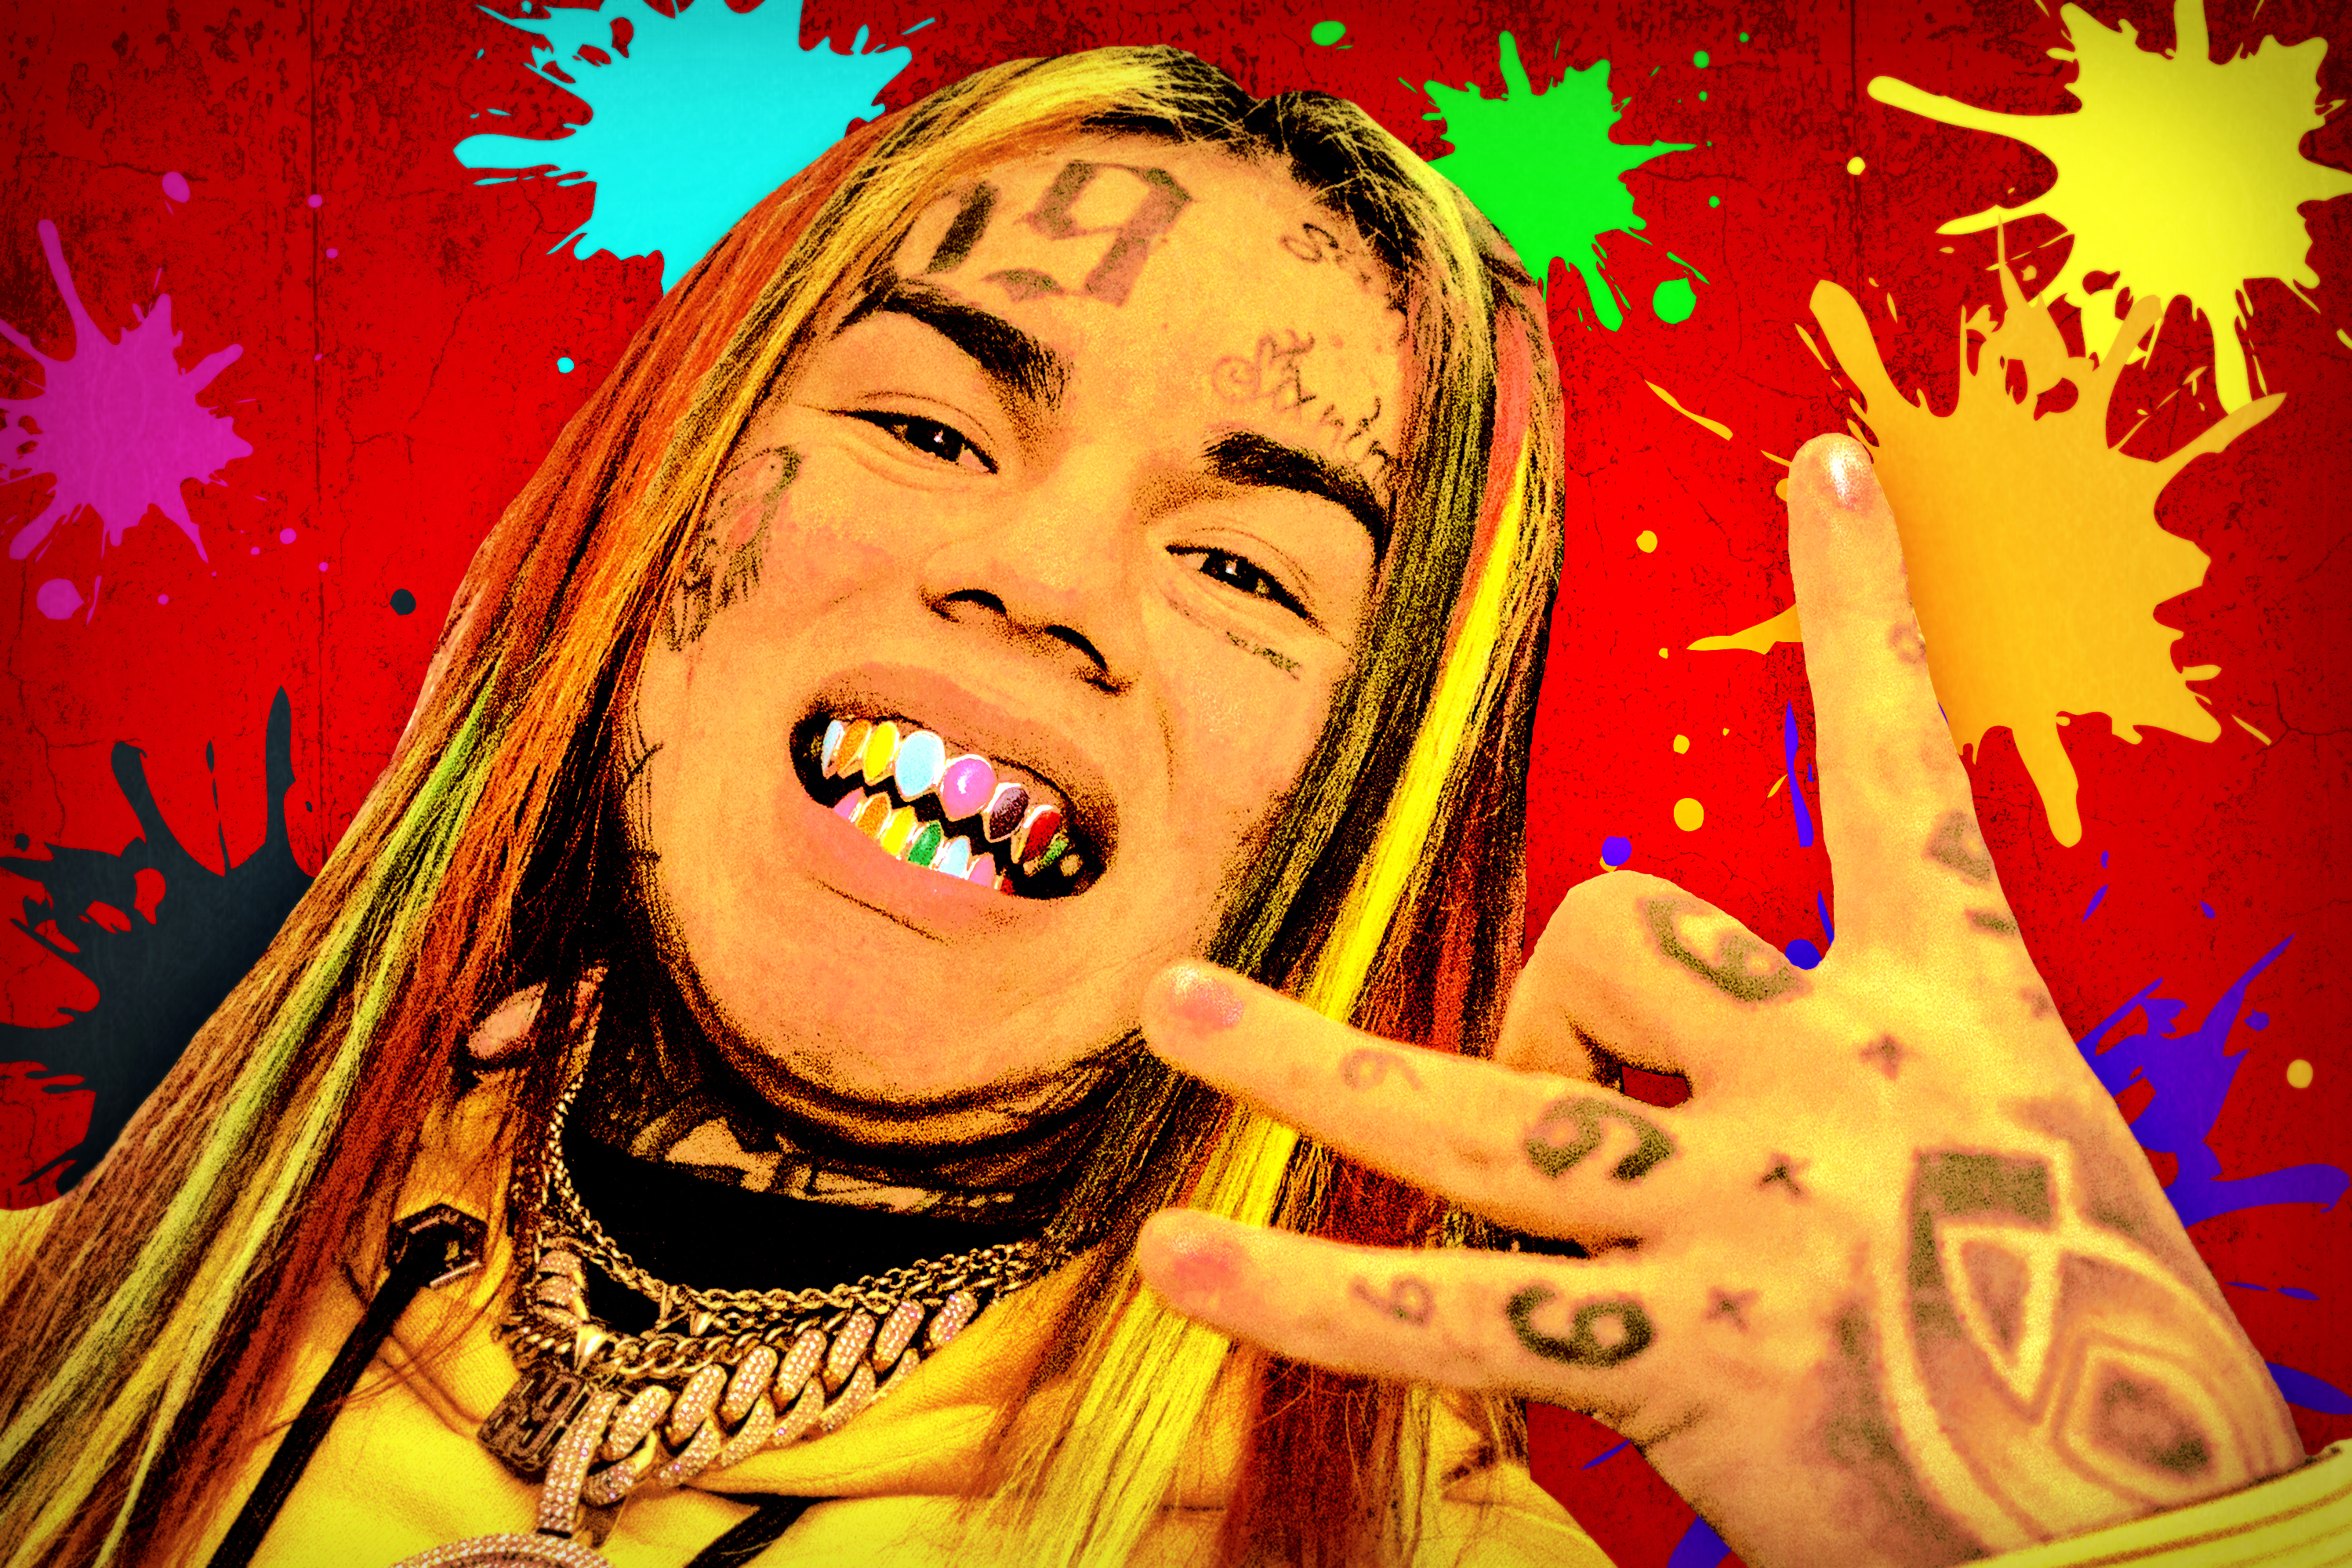 Meet 6ix9ine The First Rap Star Of 2018 Is Easy To 6ix9ine Wallpaper 4k 3000x2000 Download Hd Wallpaper Wallpapertip